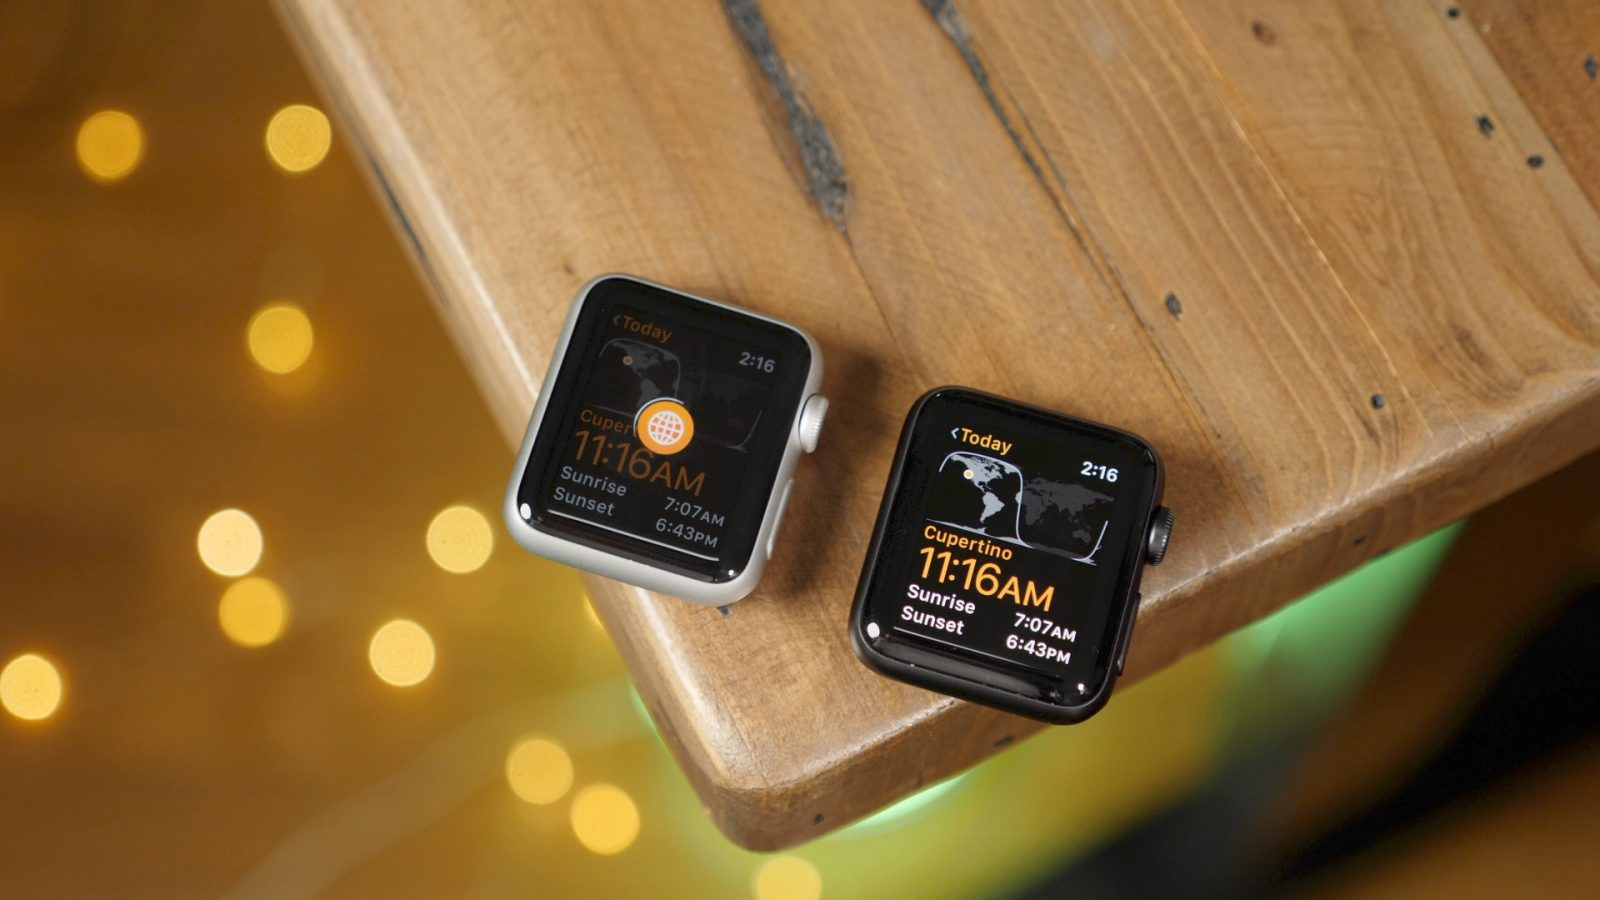 PSA: First jailbreak for Apple Watch released, but it doesn't mean